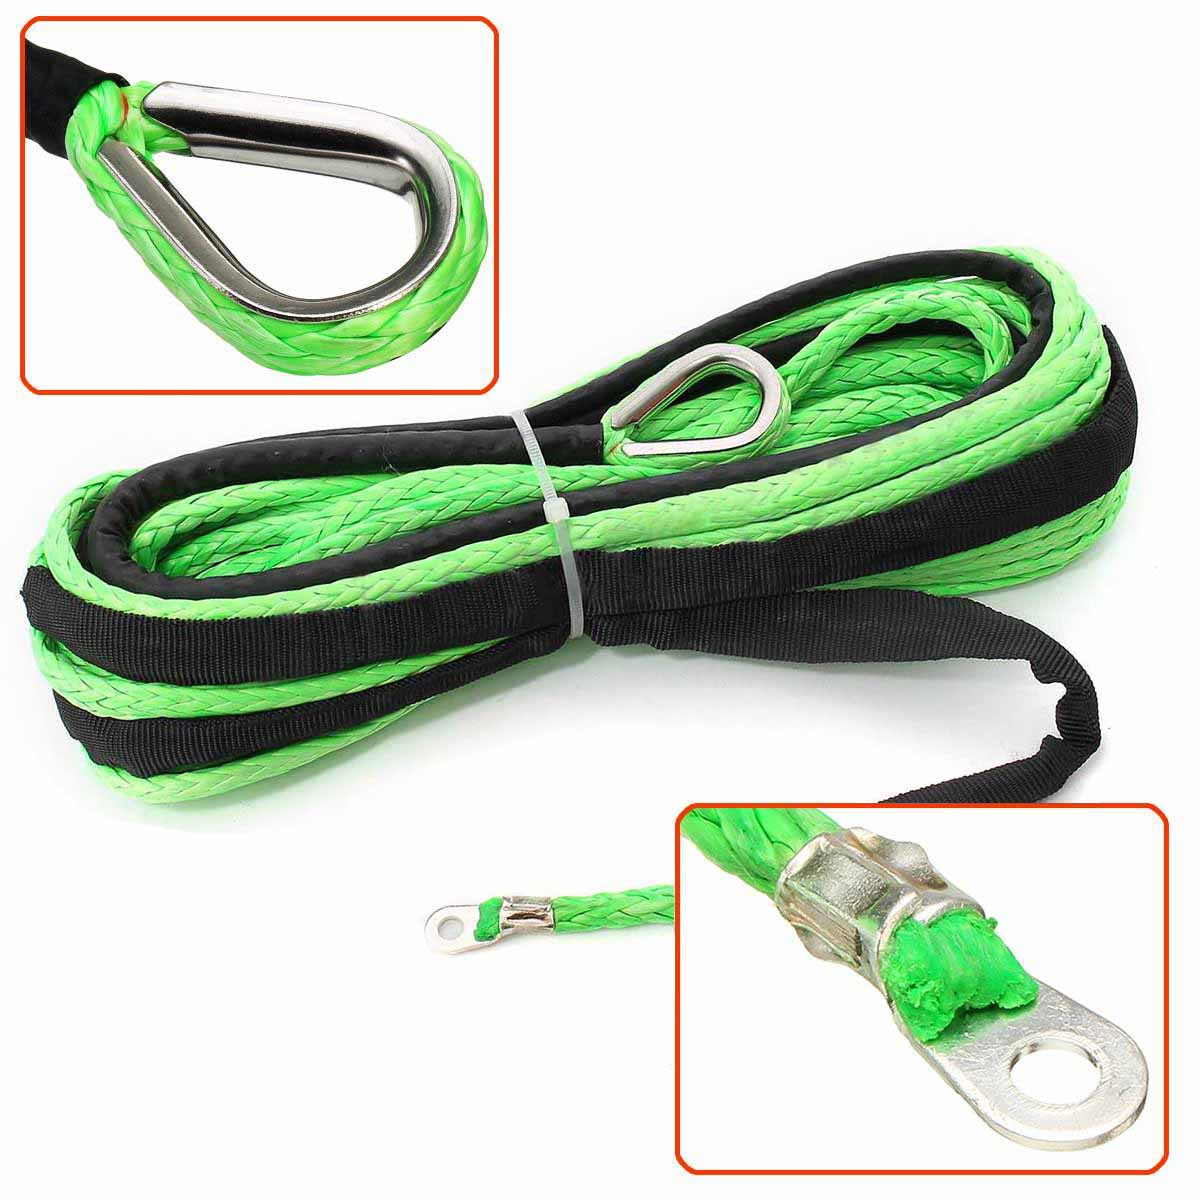 New Arrivals 4.8MM*15M 5500lbs Green Winch Rope Synthetic Cable Line With Hook for ATV UTV Off-Road